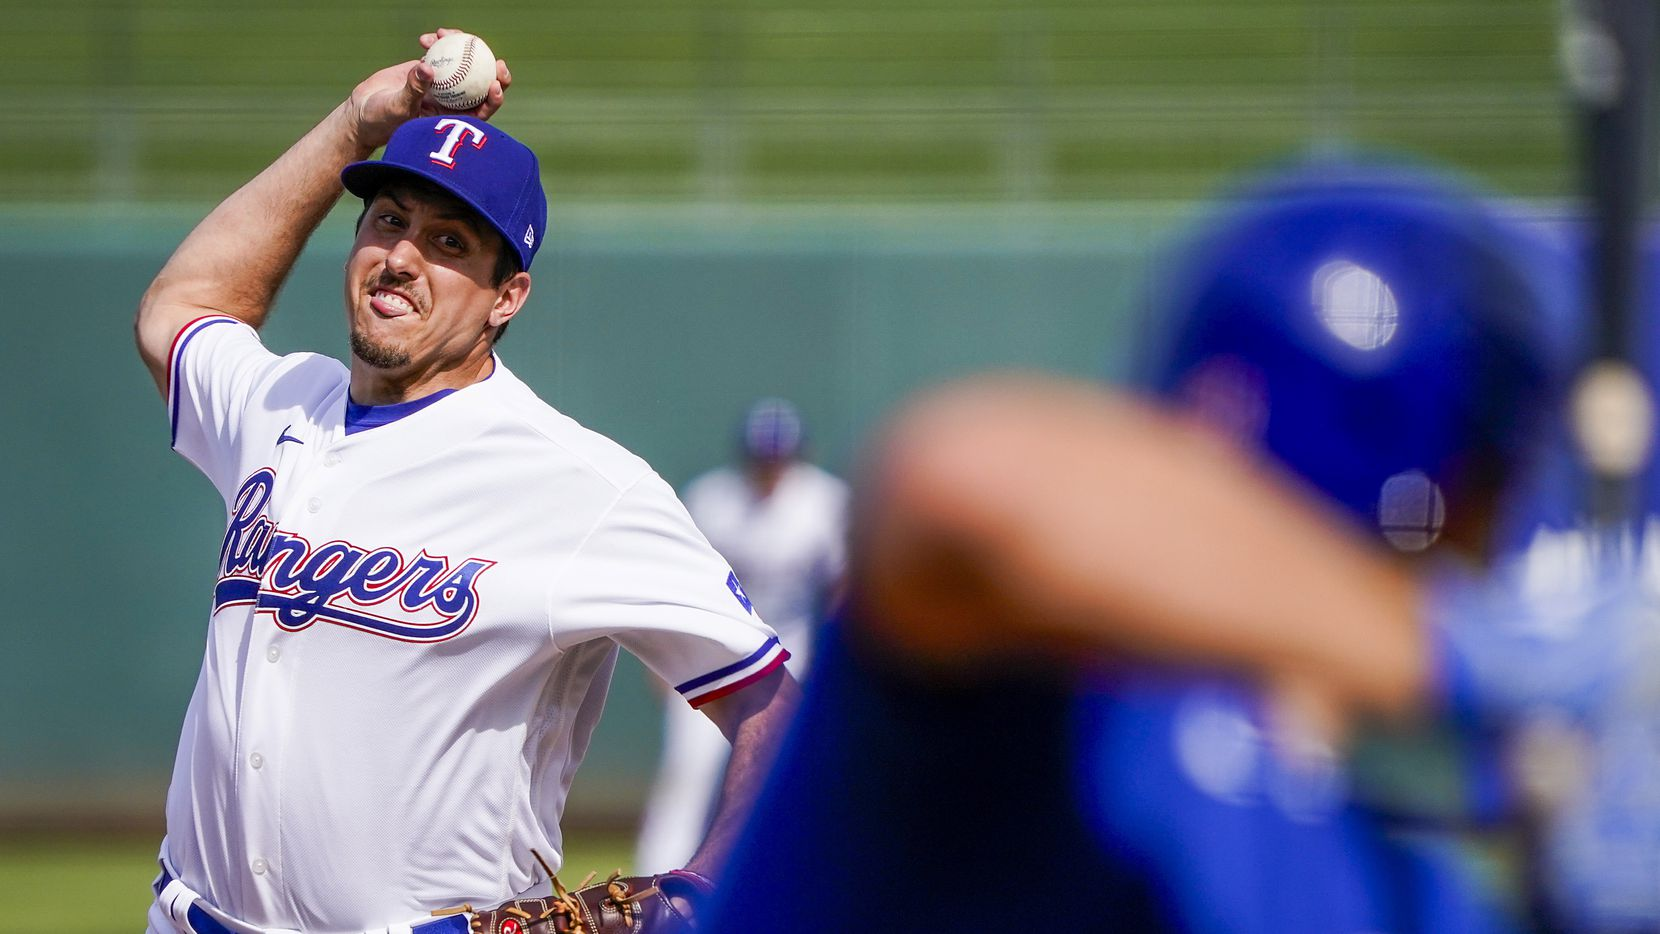 Texas Rangers pitcher Derek Law pitches during the third inning of a spring training game against the Chicago Cubs at Surprise Stadium on Thursday, Feb. 27, 2020, in Surprise, Ariz.